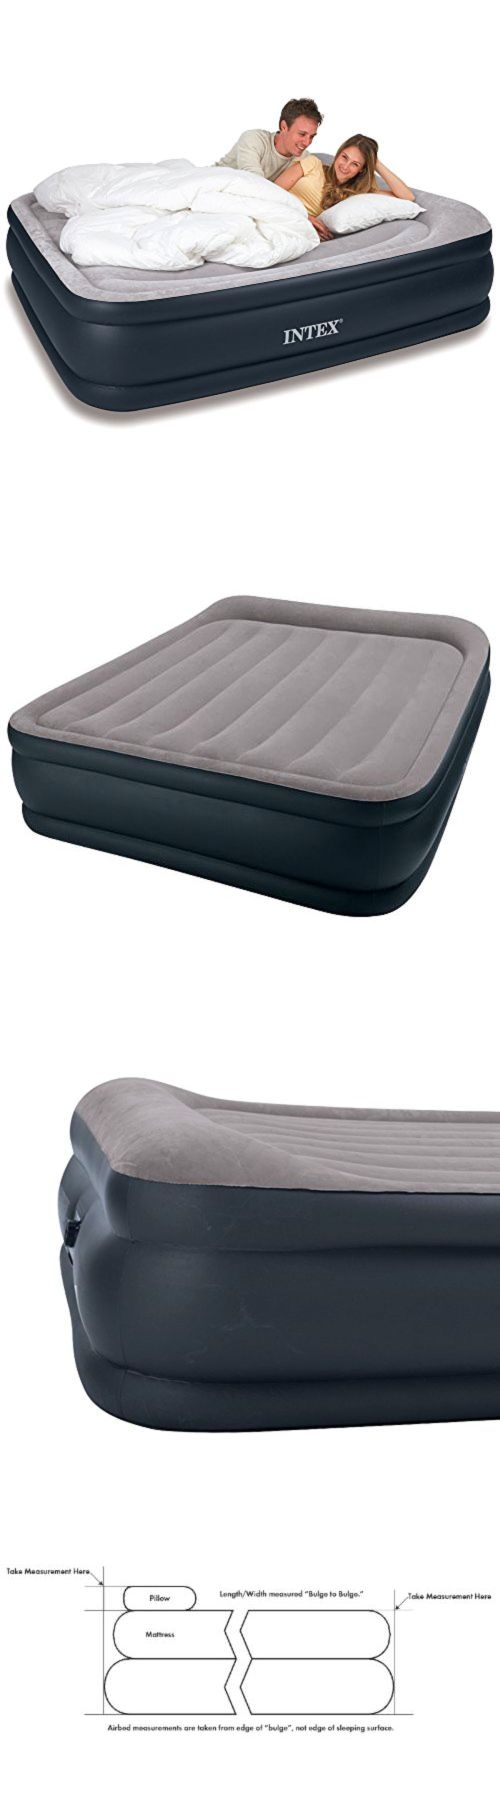 Other Camping Sleeping Gear 16040: Air Mattress Comfort Pillow Raised Queen Airbed Camping Sleeping Gear Bed Intex -> BUY IT NOW ONLY: $66.79 on eBay!